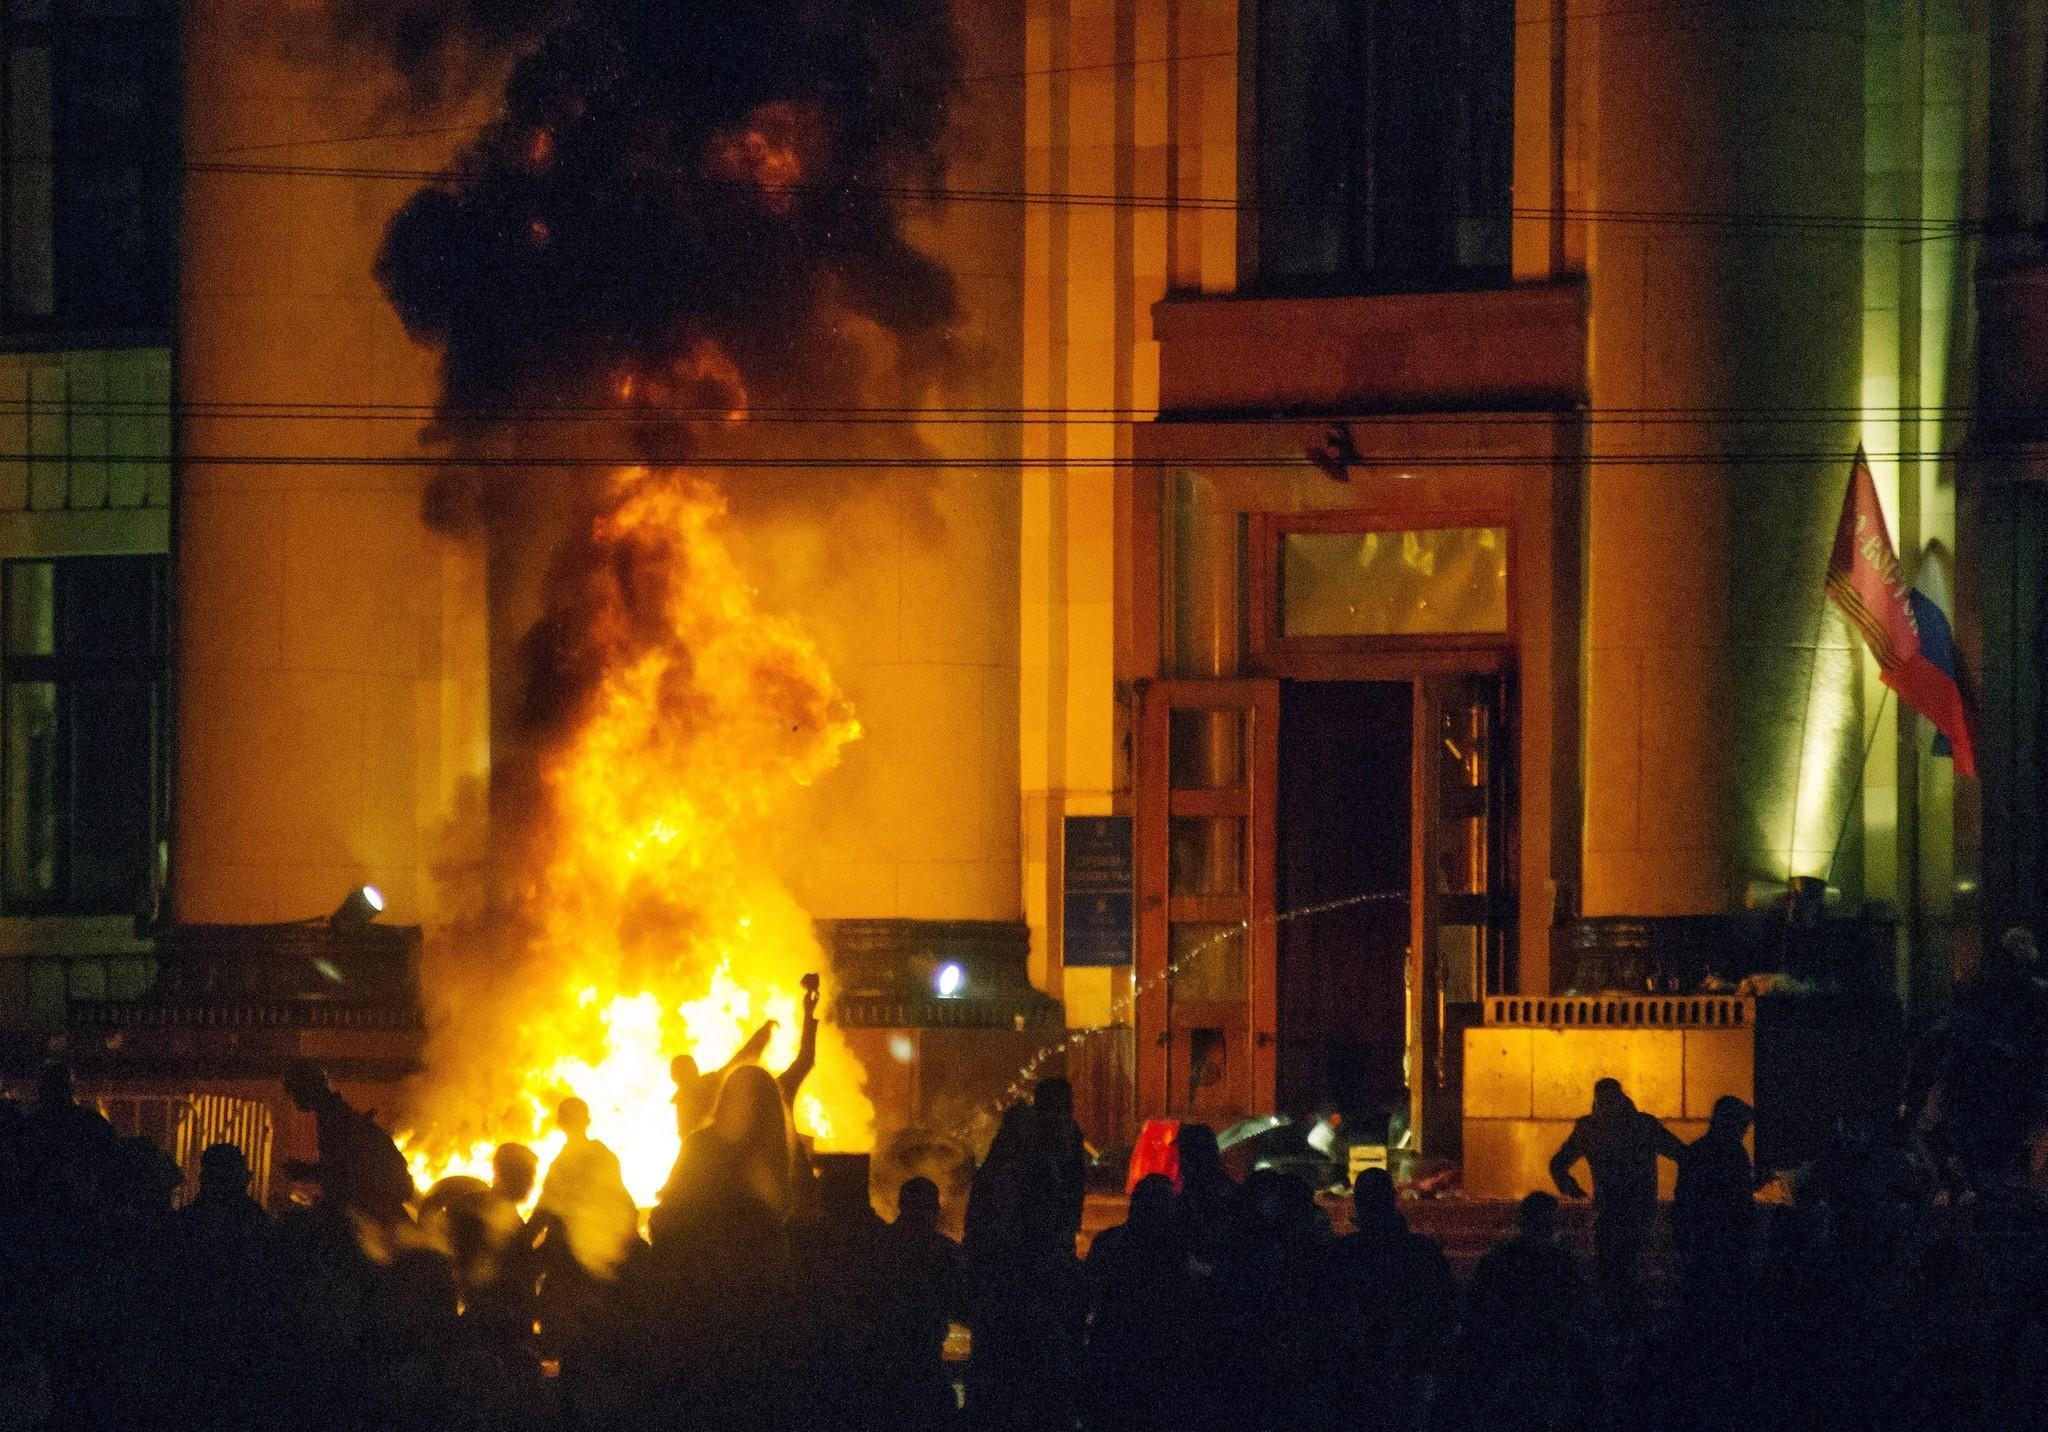 Pro-Russia protesters burn tires near a regional administration building in Kharkiv, Ukraine, in a clash with riot police for control of the building.